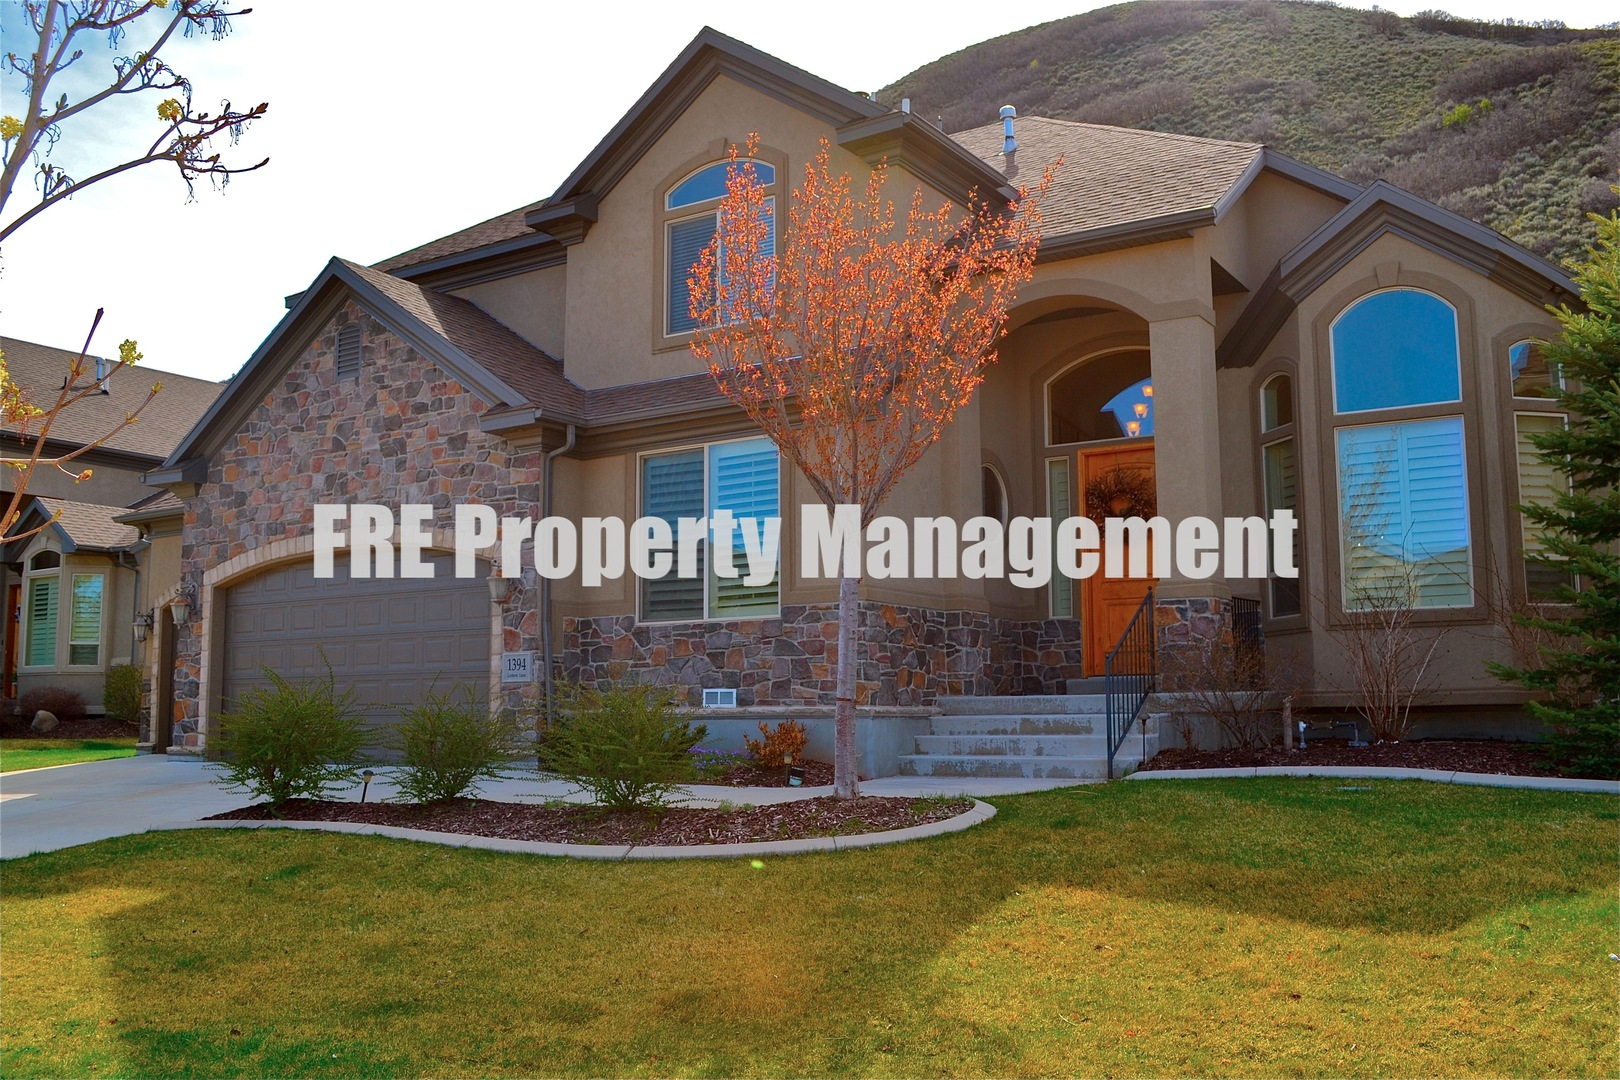 House for Rent in Draper